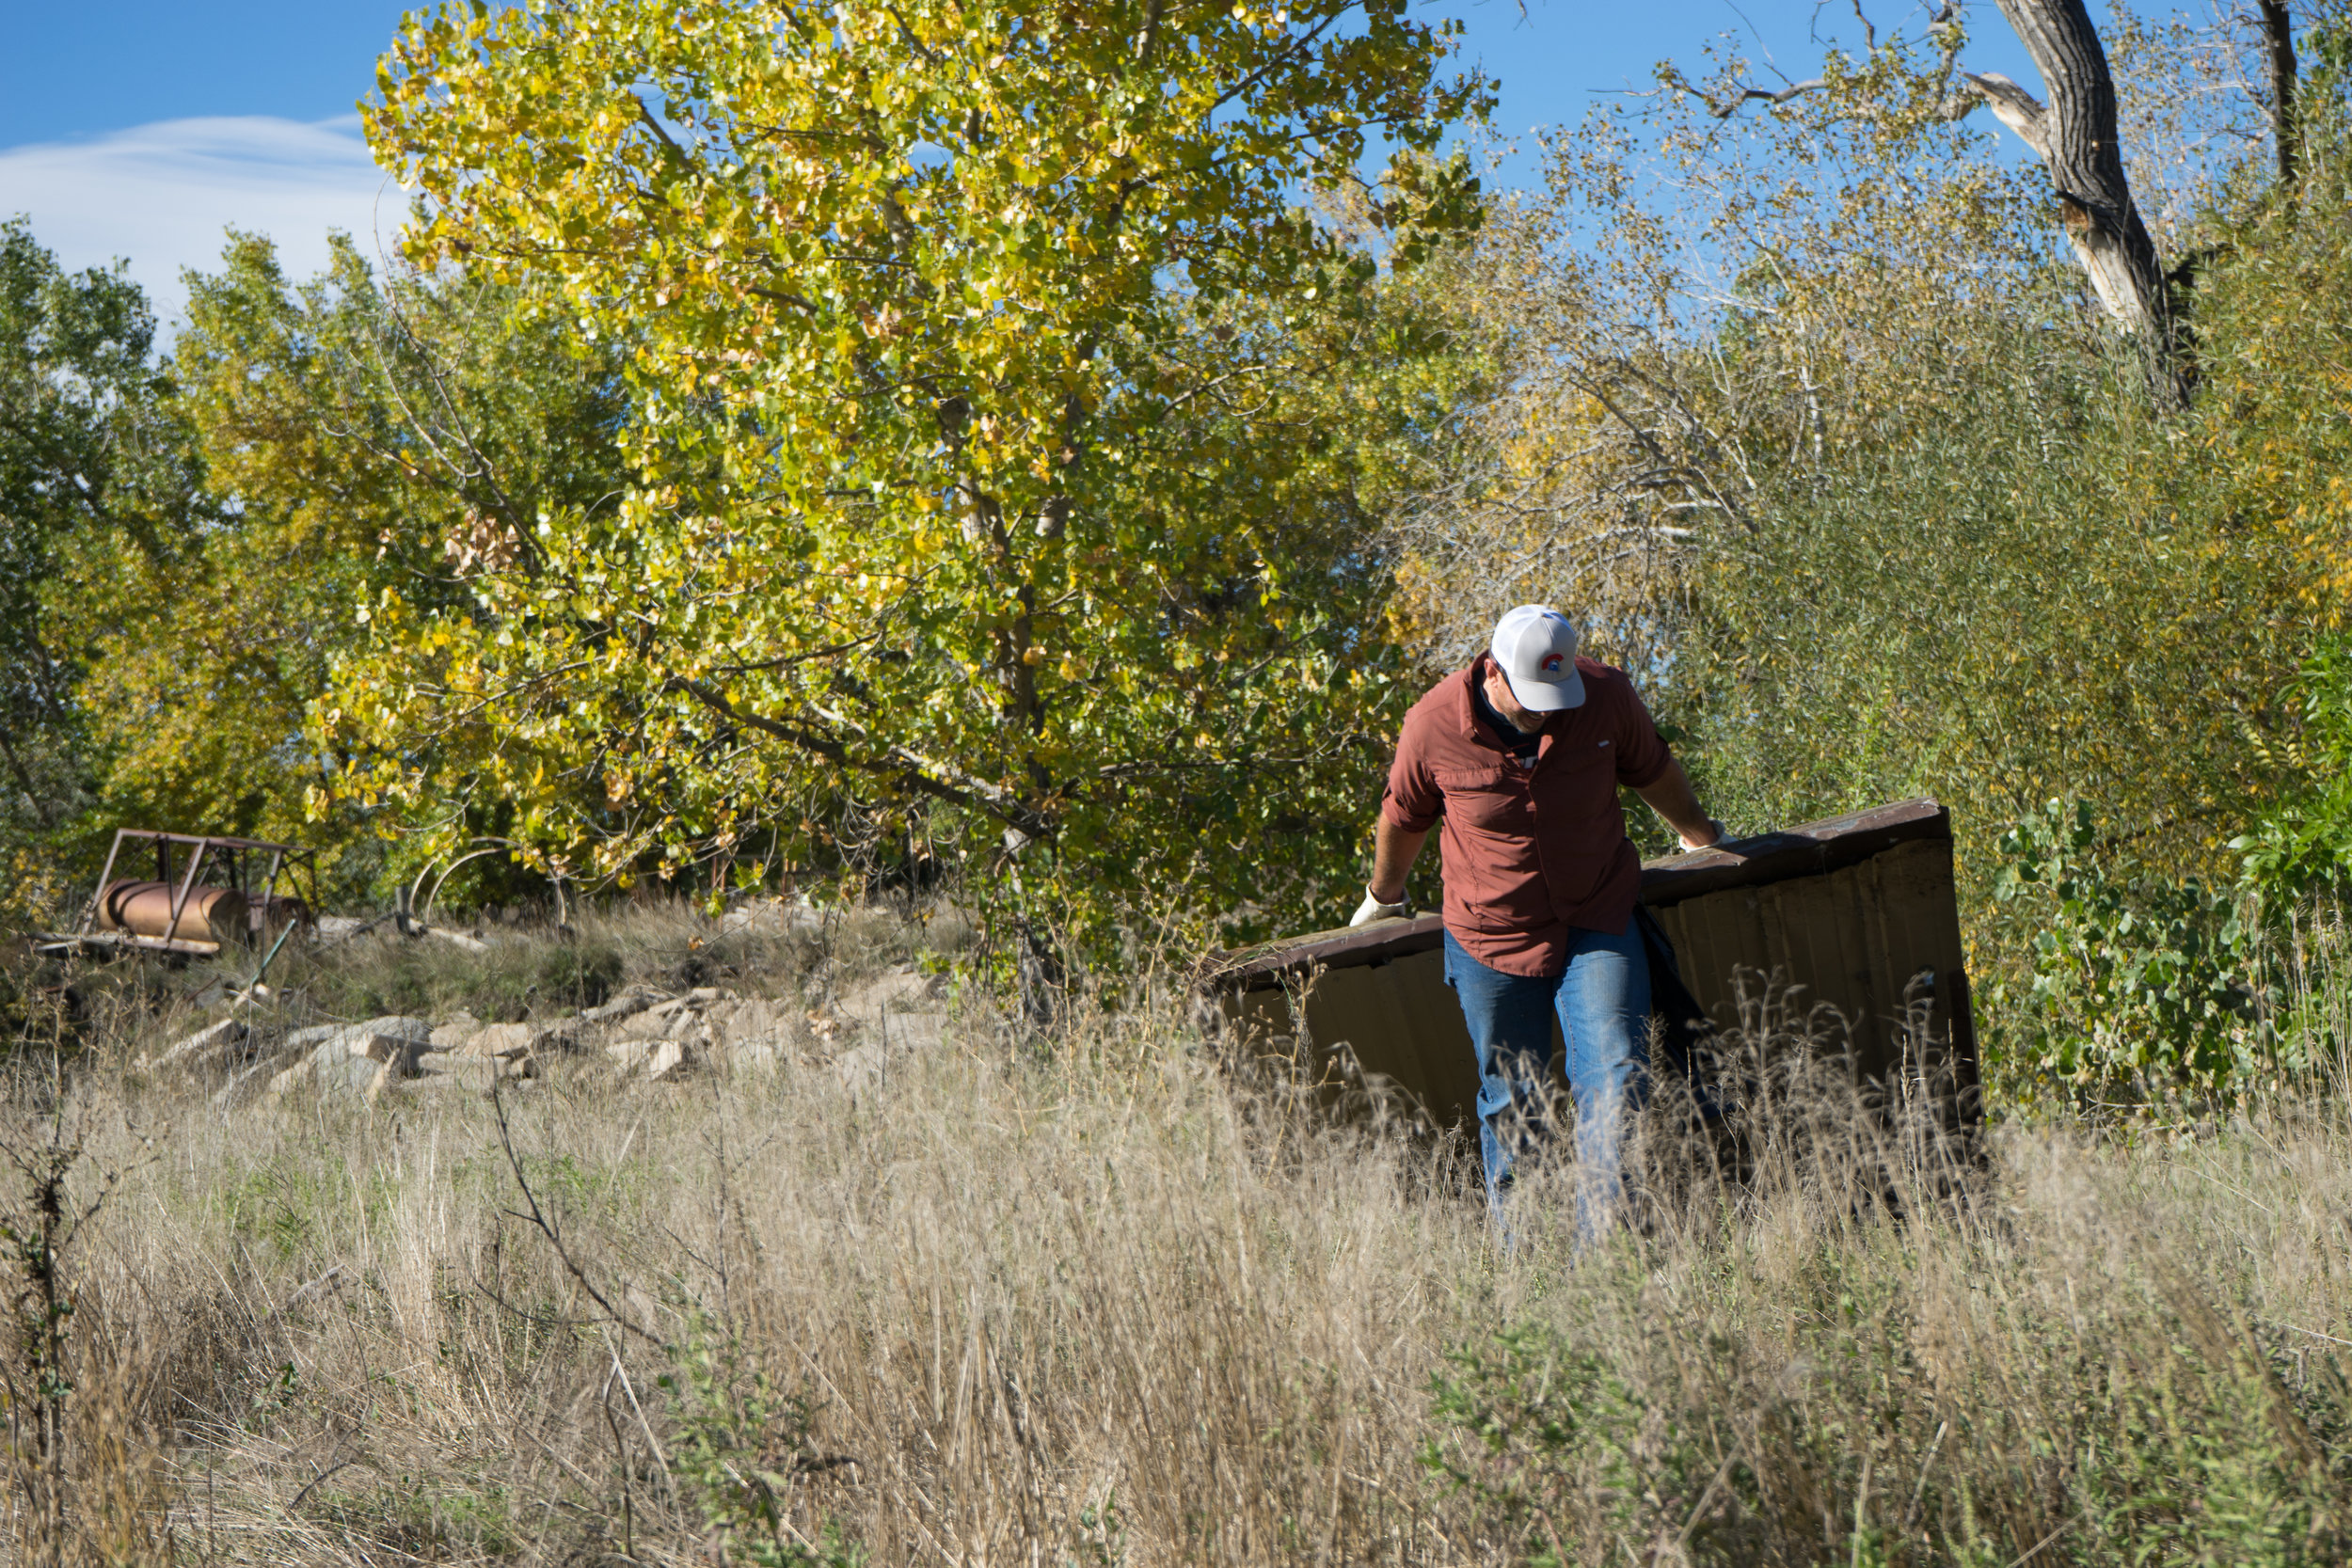 October 7th 2017 WOR partnered with local government, businesses and the community to clean about ¼ mile of the Big Thompson River in the urban corridor.